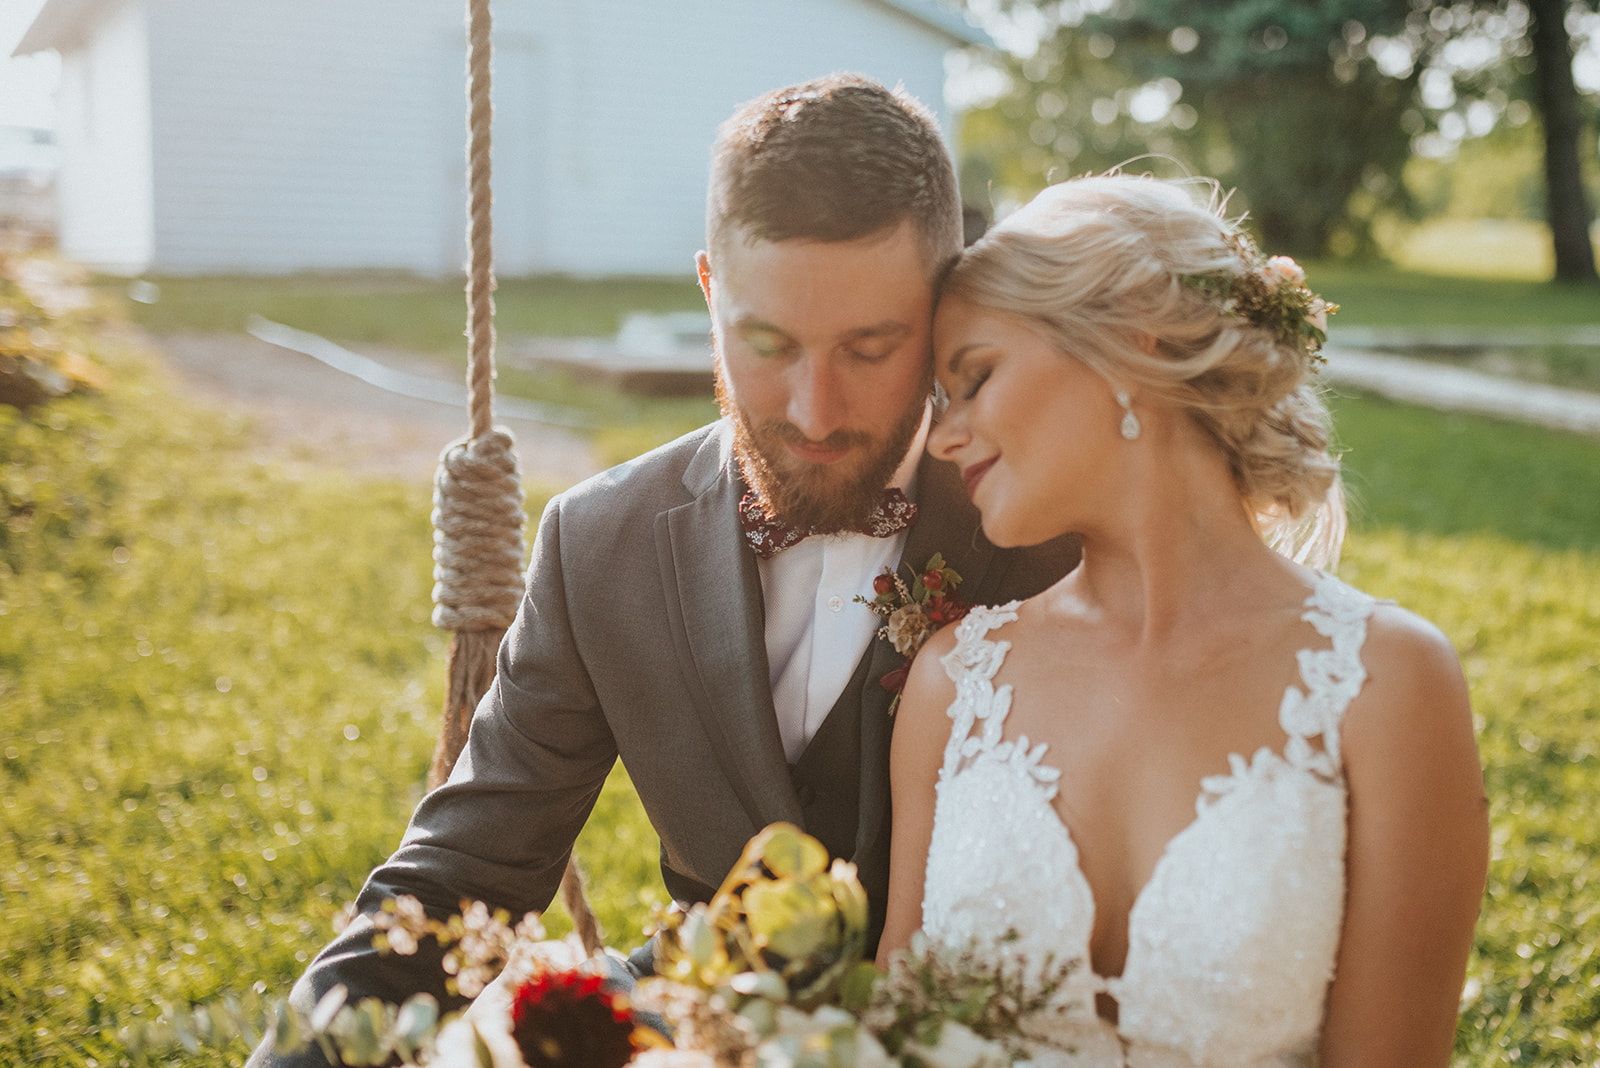 overthevineswisconsinwedding_0973.jpg